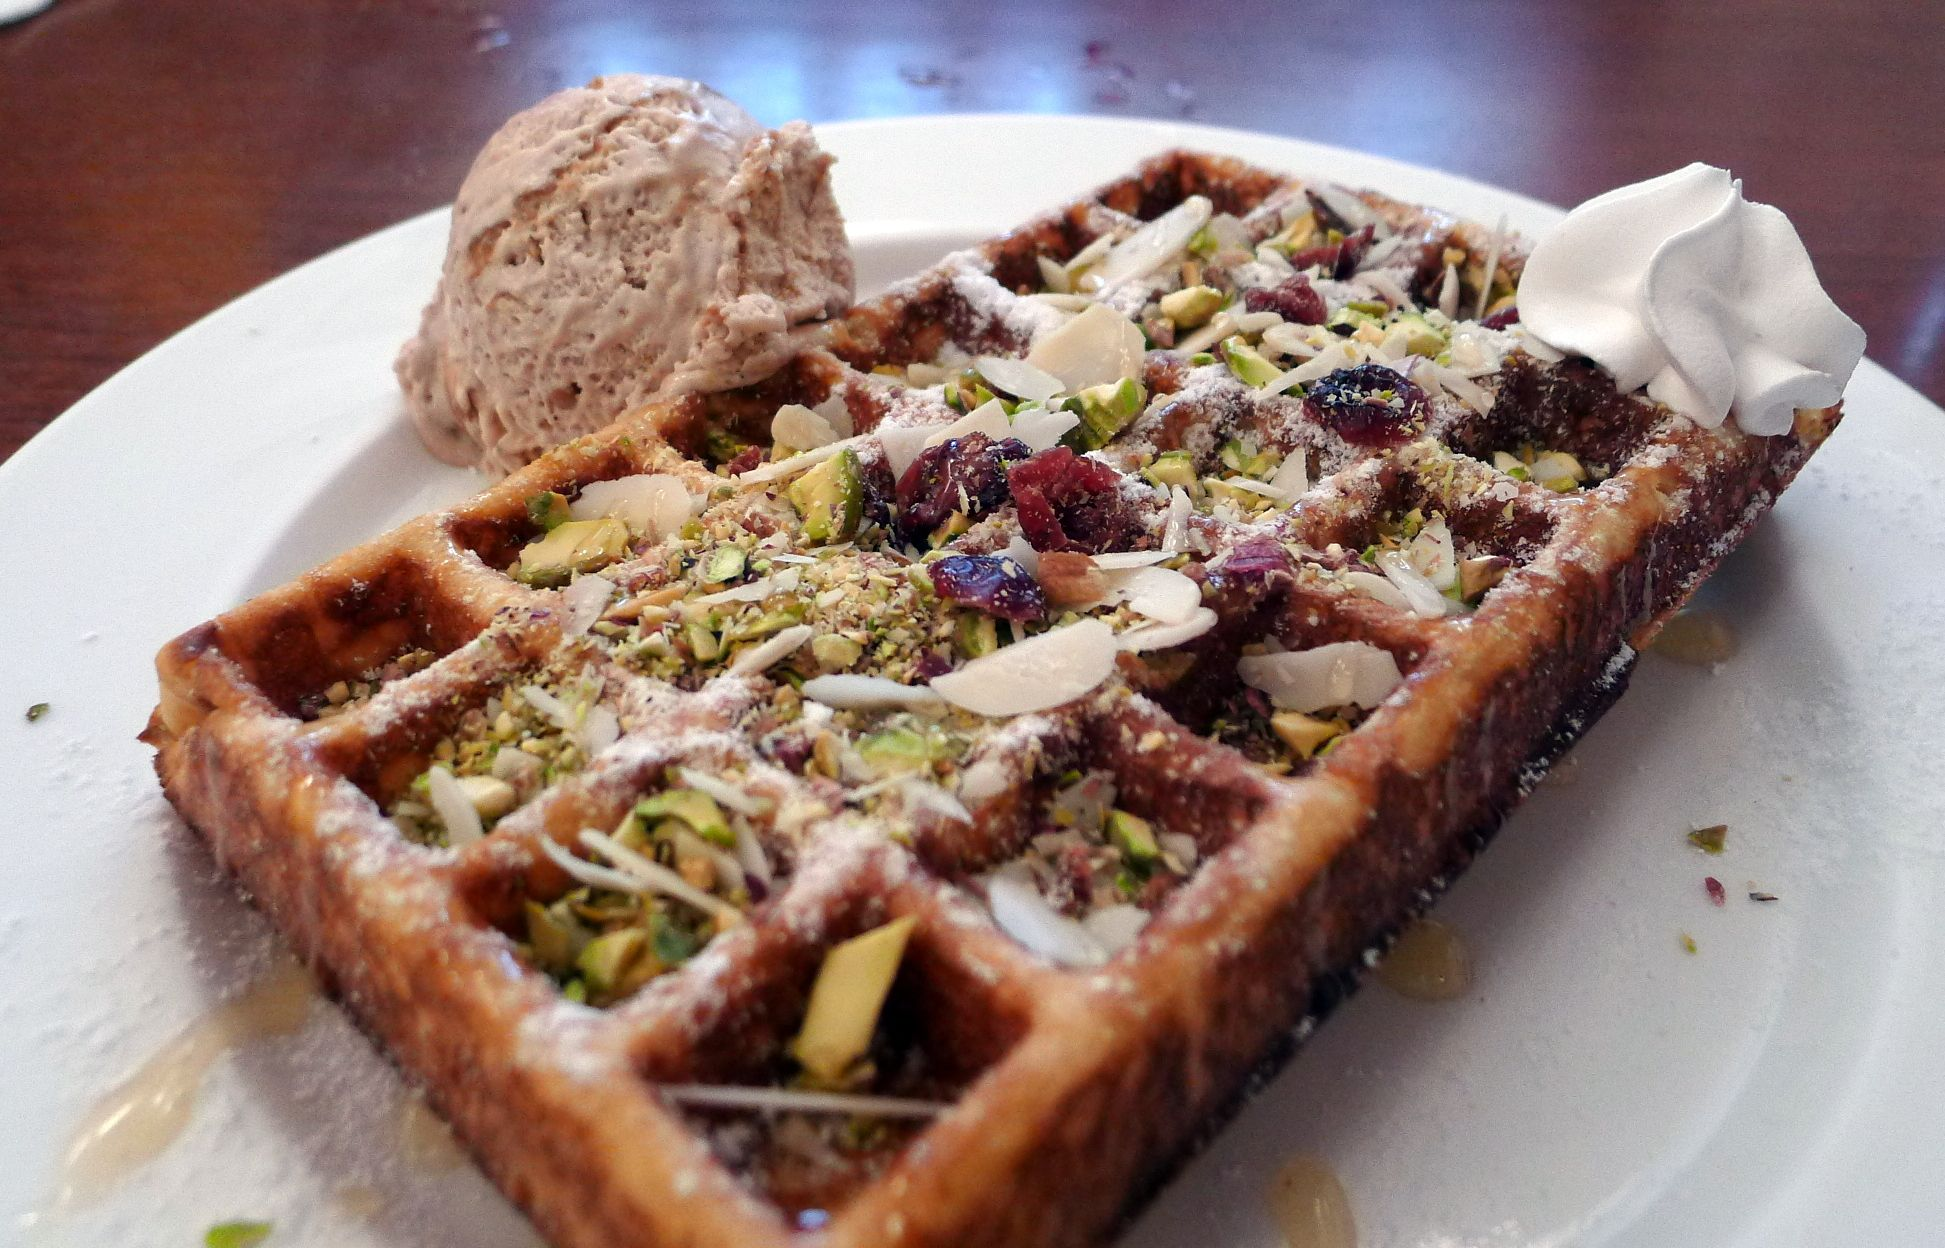 Healthy Honey Pistachio Almond Waffle at the Green Waffle Diner in Hong Kong (Sept 2013) - Photo taken by BradJill